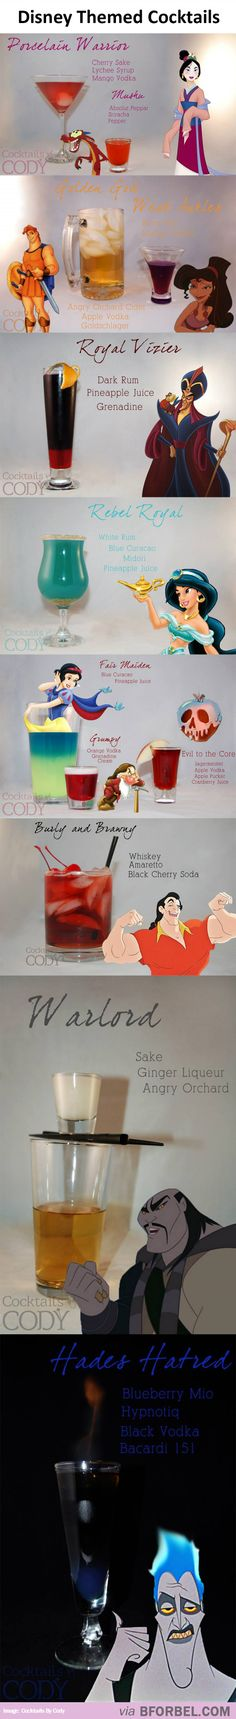 12 More Disney Themed Cocktails You'll Definitely Love…